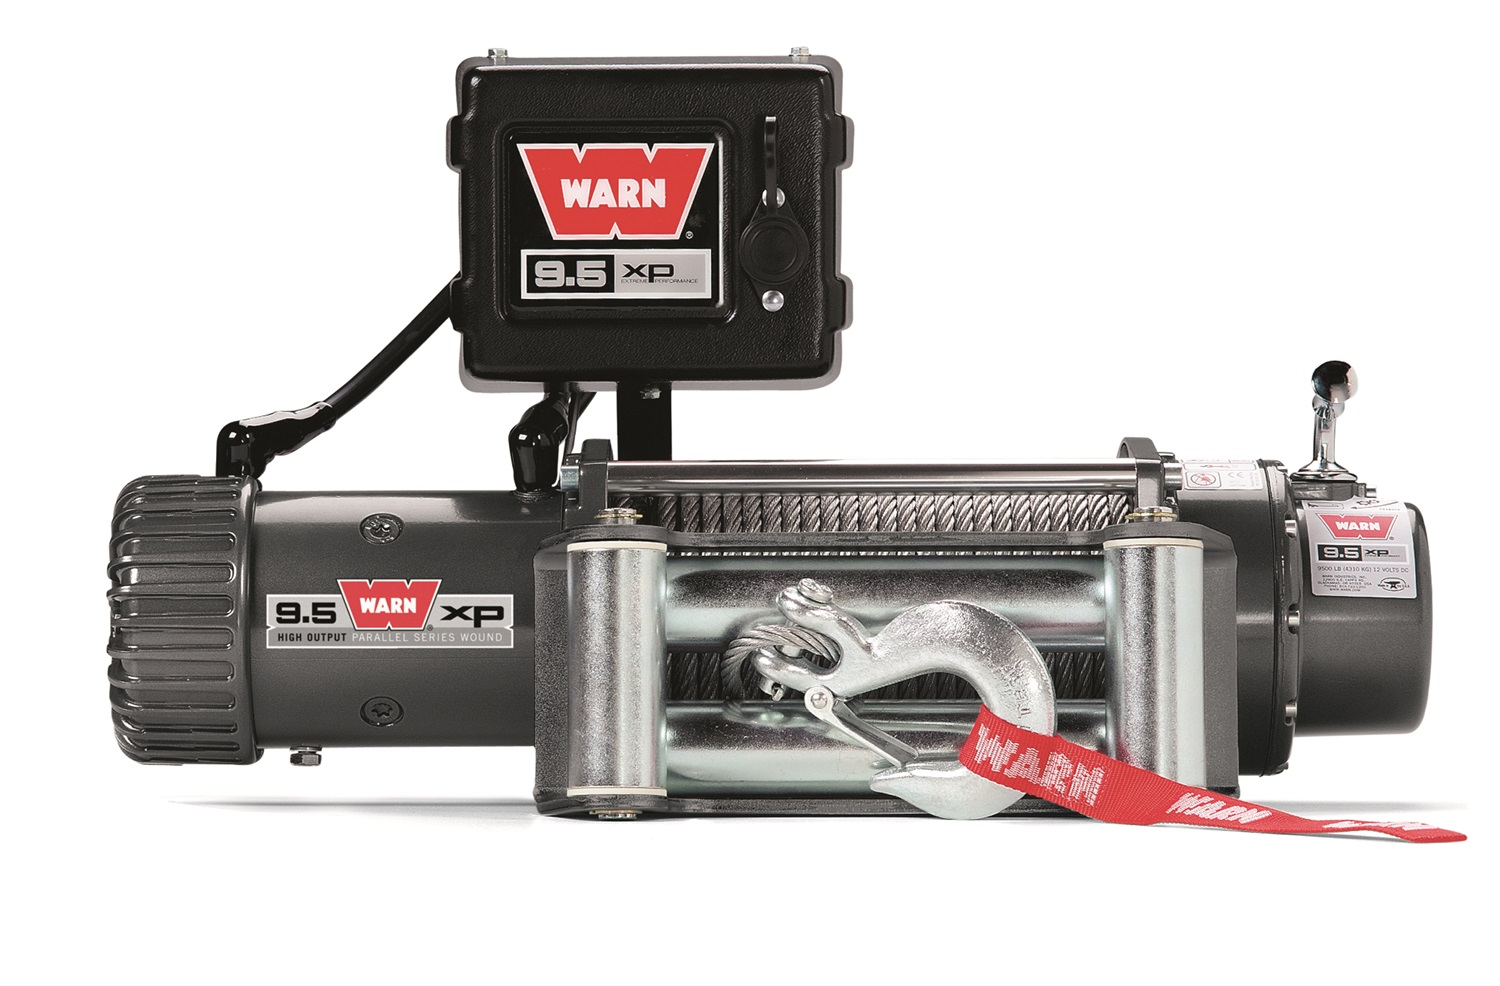 warn 9500 lb winch schematic get free image about wiring diagram Warn Winch Motor Wiring Diagram Warn Winch Remote Wiring Diagram